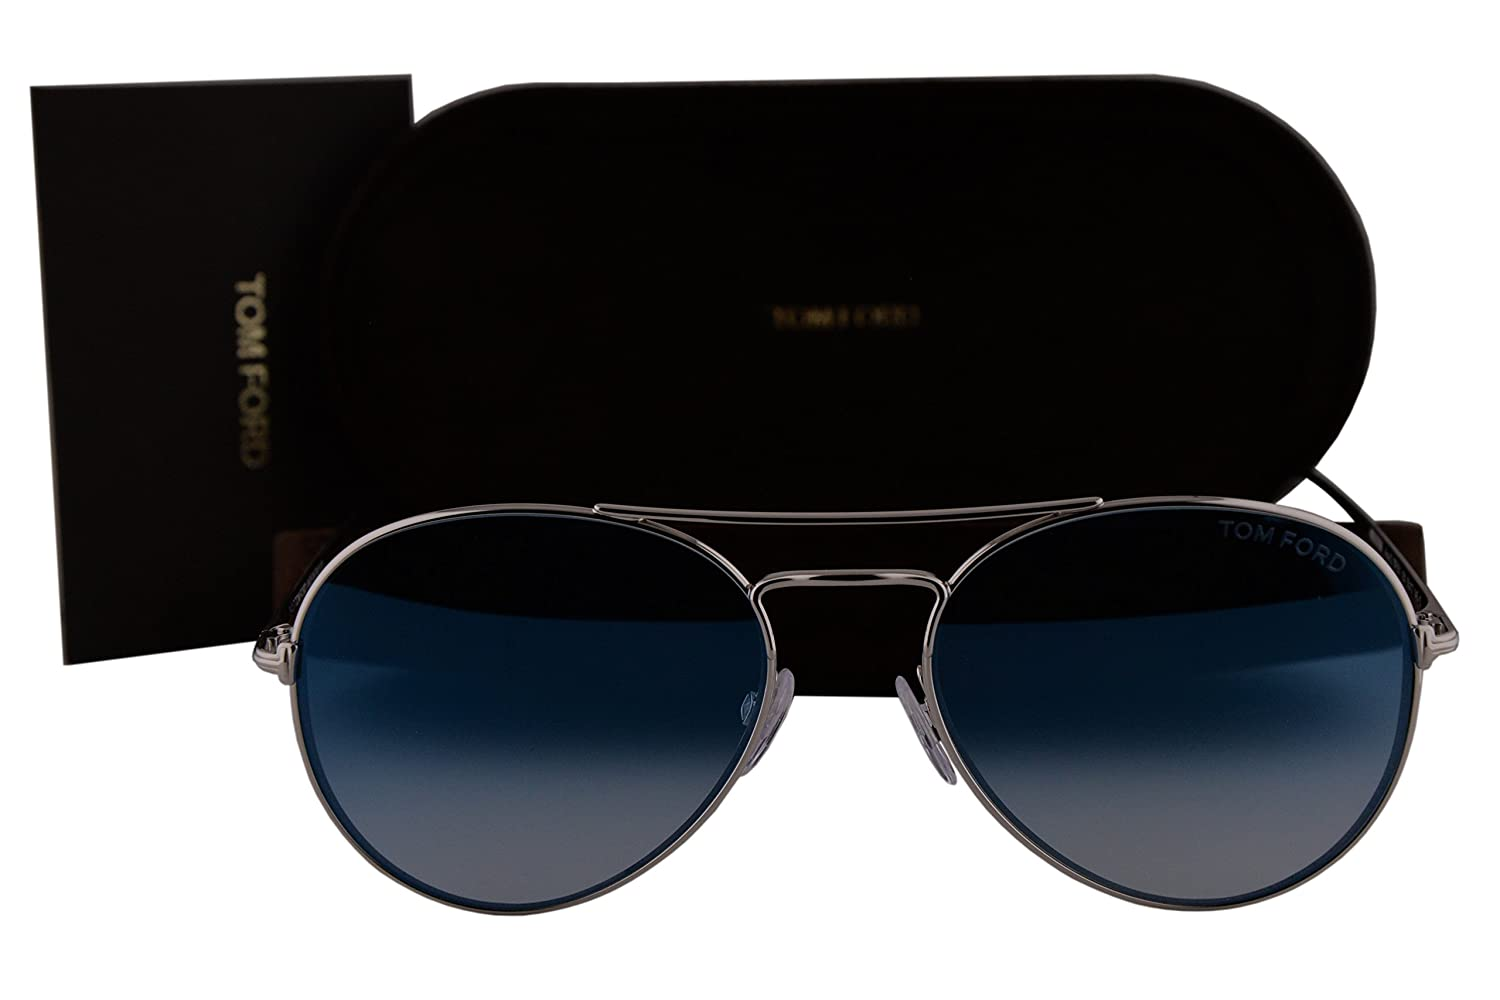 d141f9a7b784 Amazon.com  Tom Ford FT0551 Ace-02 Sunglasses Rhodium Shiny Silver w Blue  Gradient Mirror Lens 18X TF551  Clothing